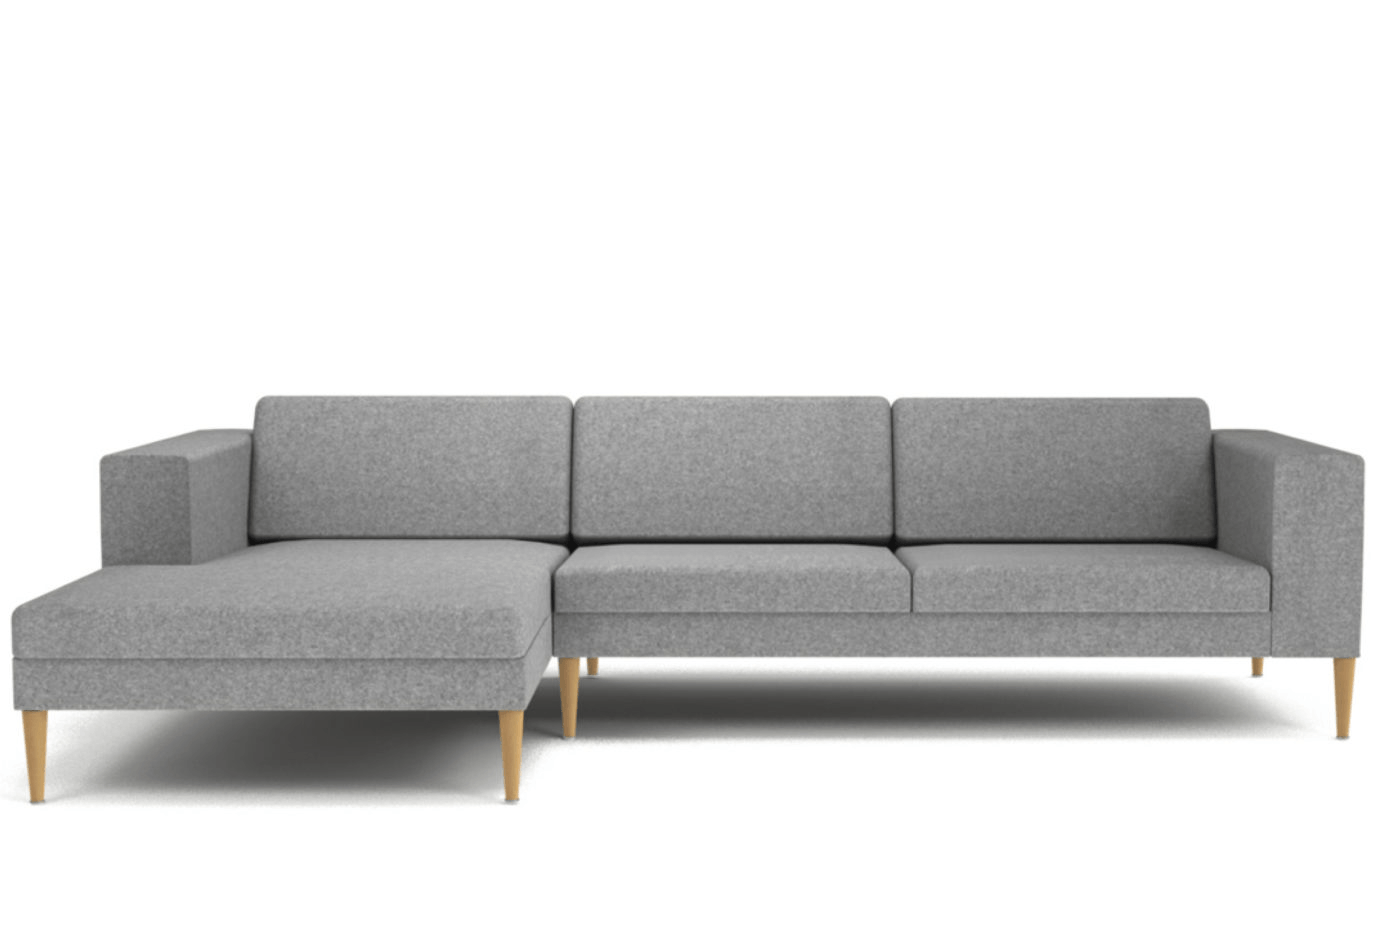 Sofa with chaise lounge sofa chaise bed armchair bed for Sofa chester chaise longue